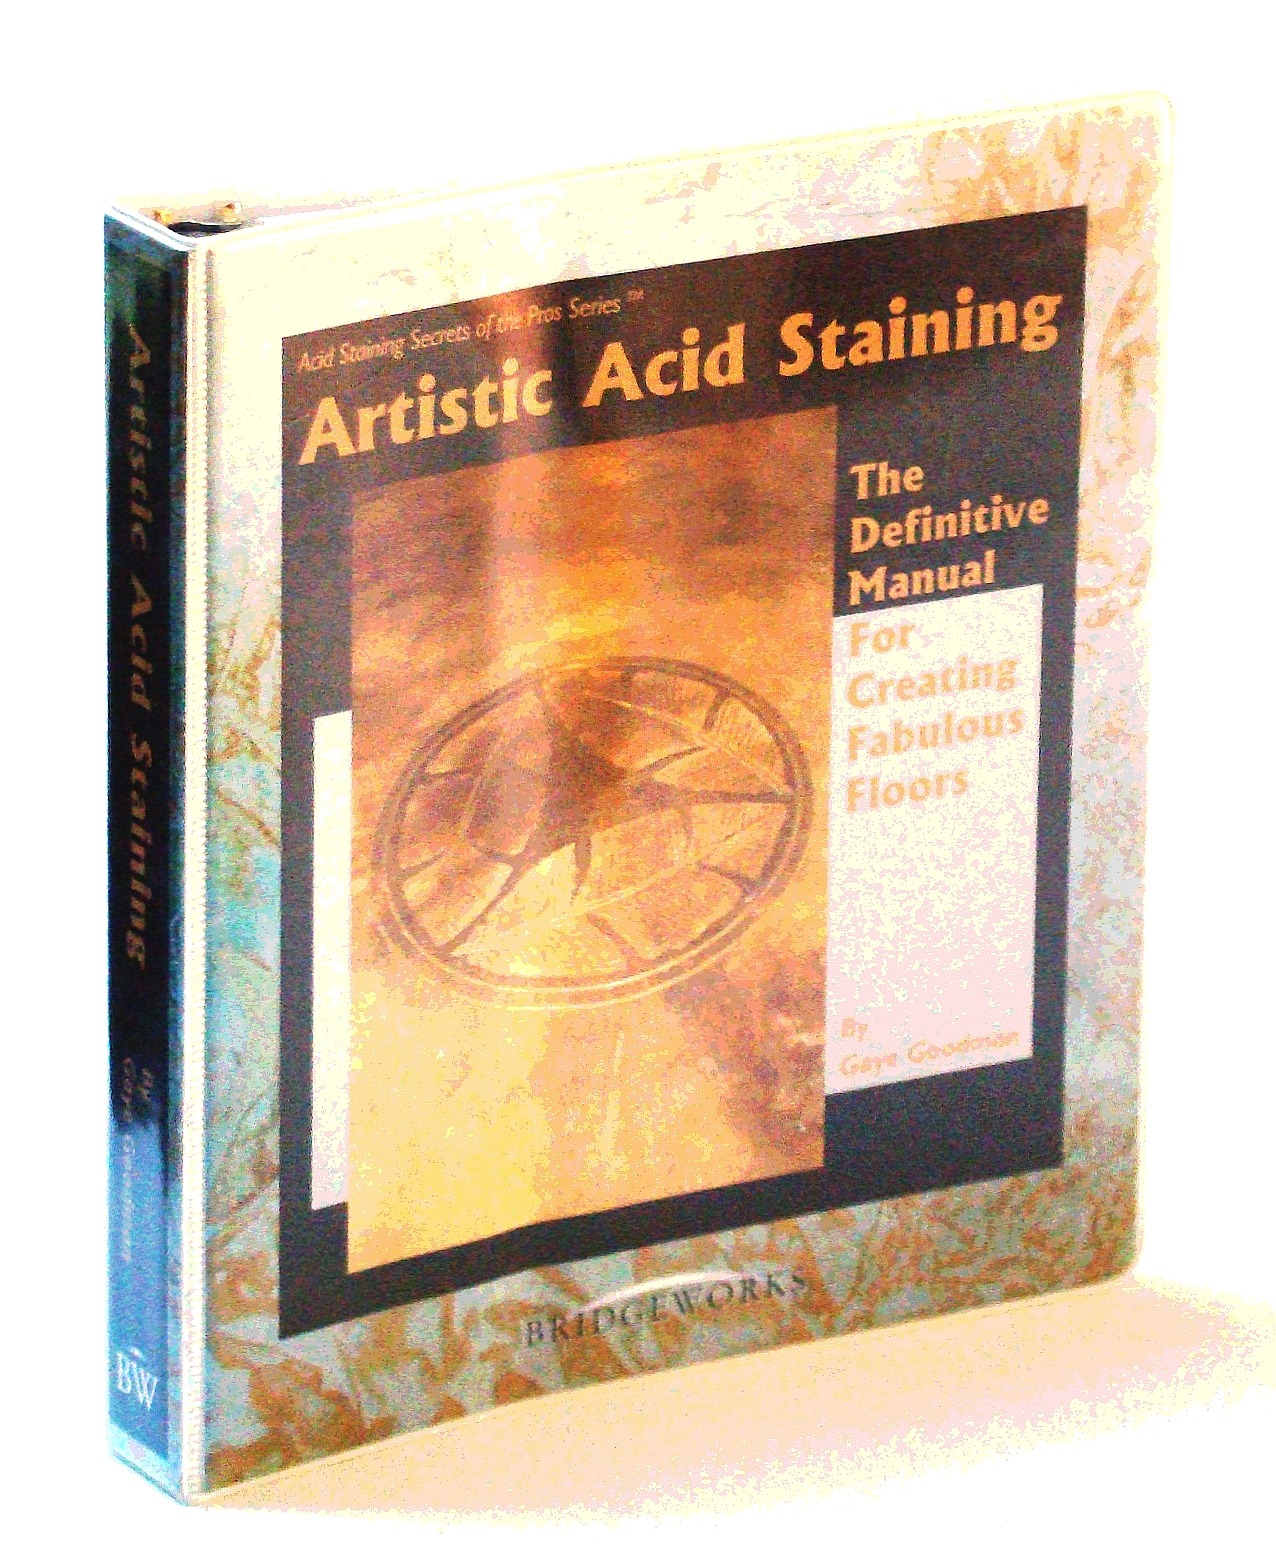 Artistic Acid Staining: The Definitive Manual For Creating Fabulous Floors (Acid Staining Secrets of the Pros Series)